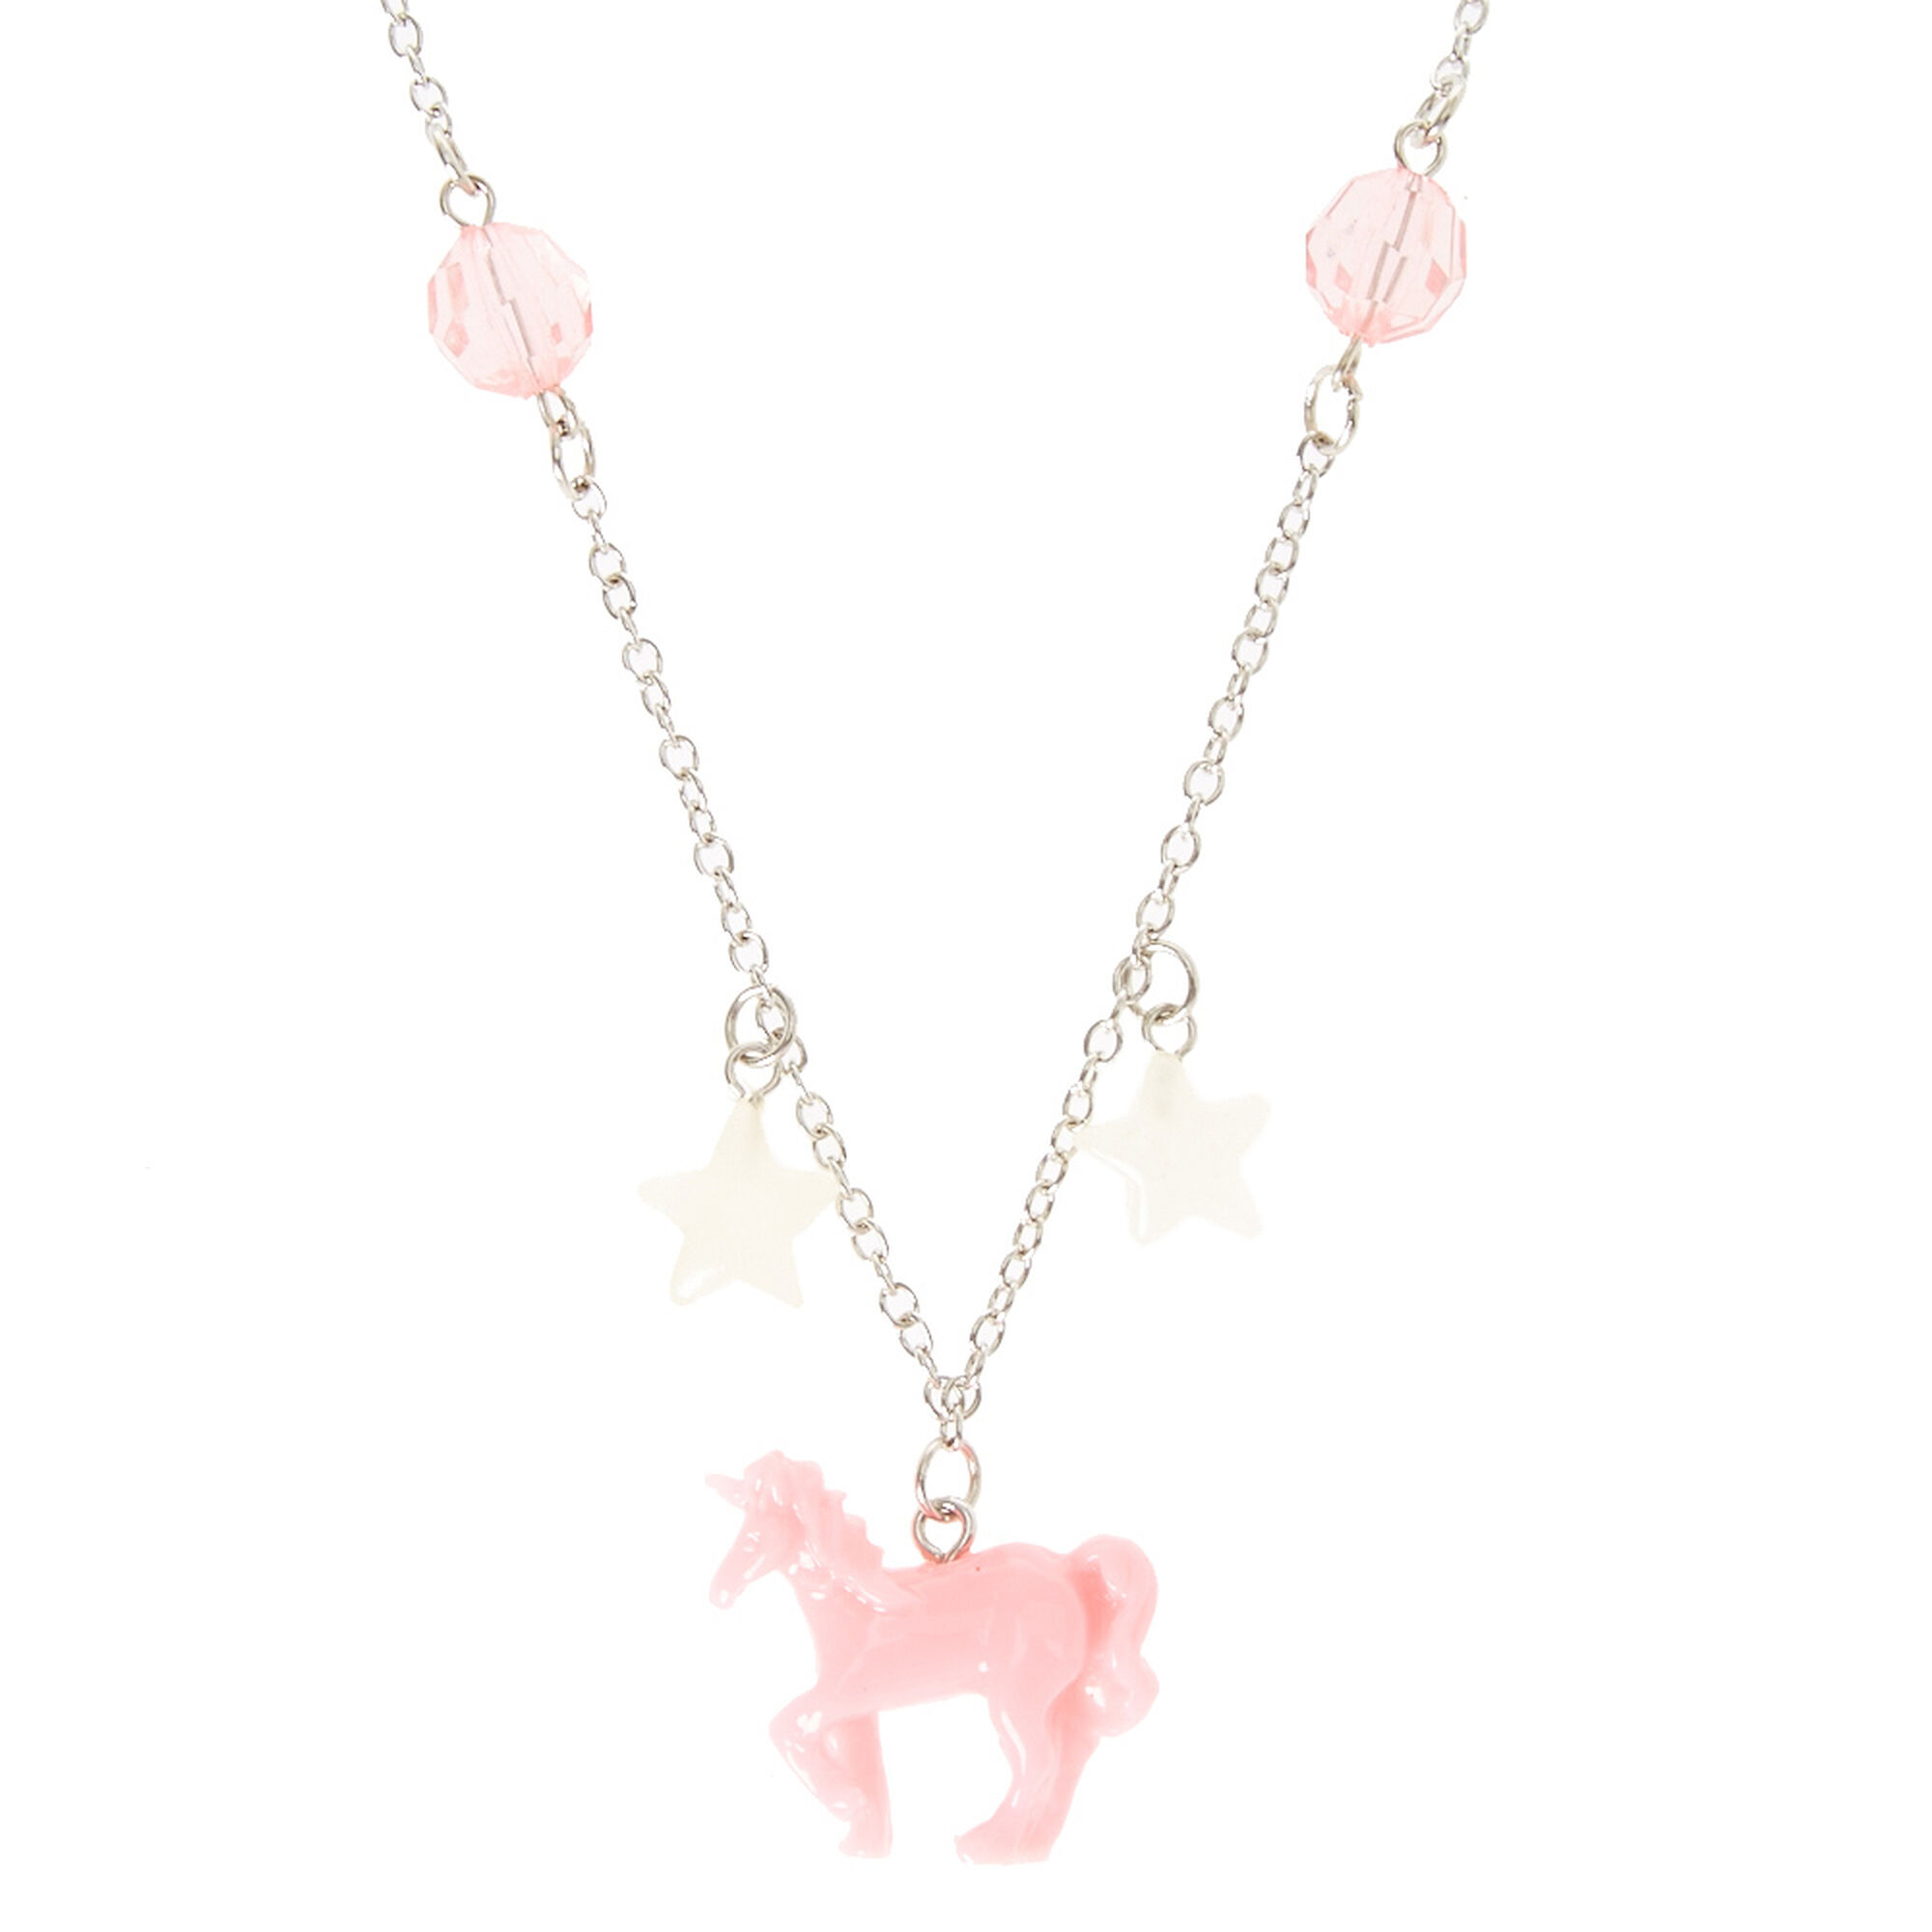 product necklace with tiny unicorn flower charm pendant